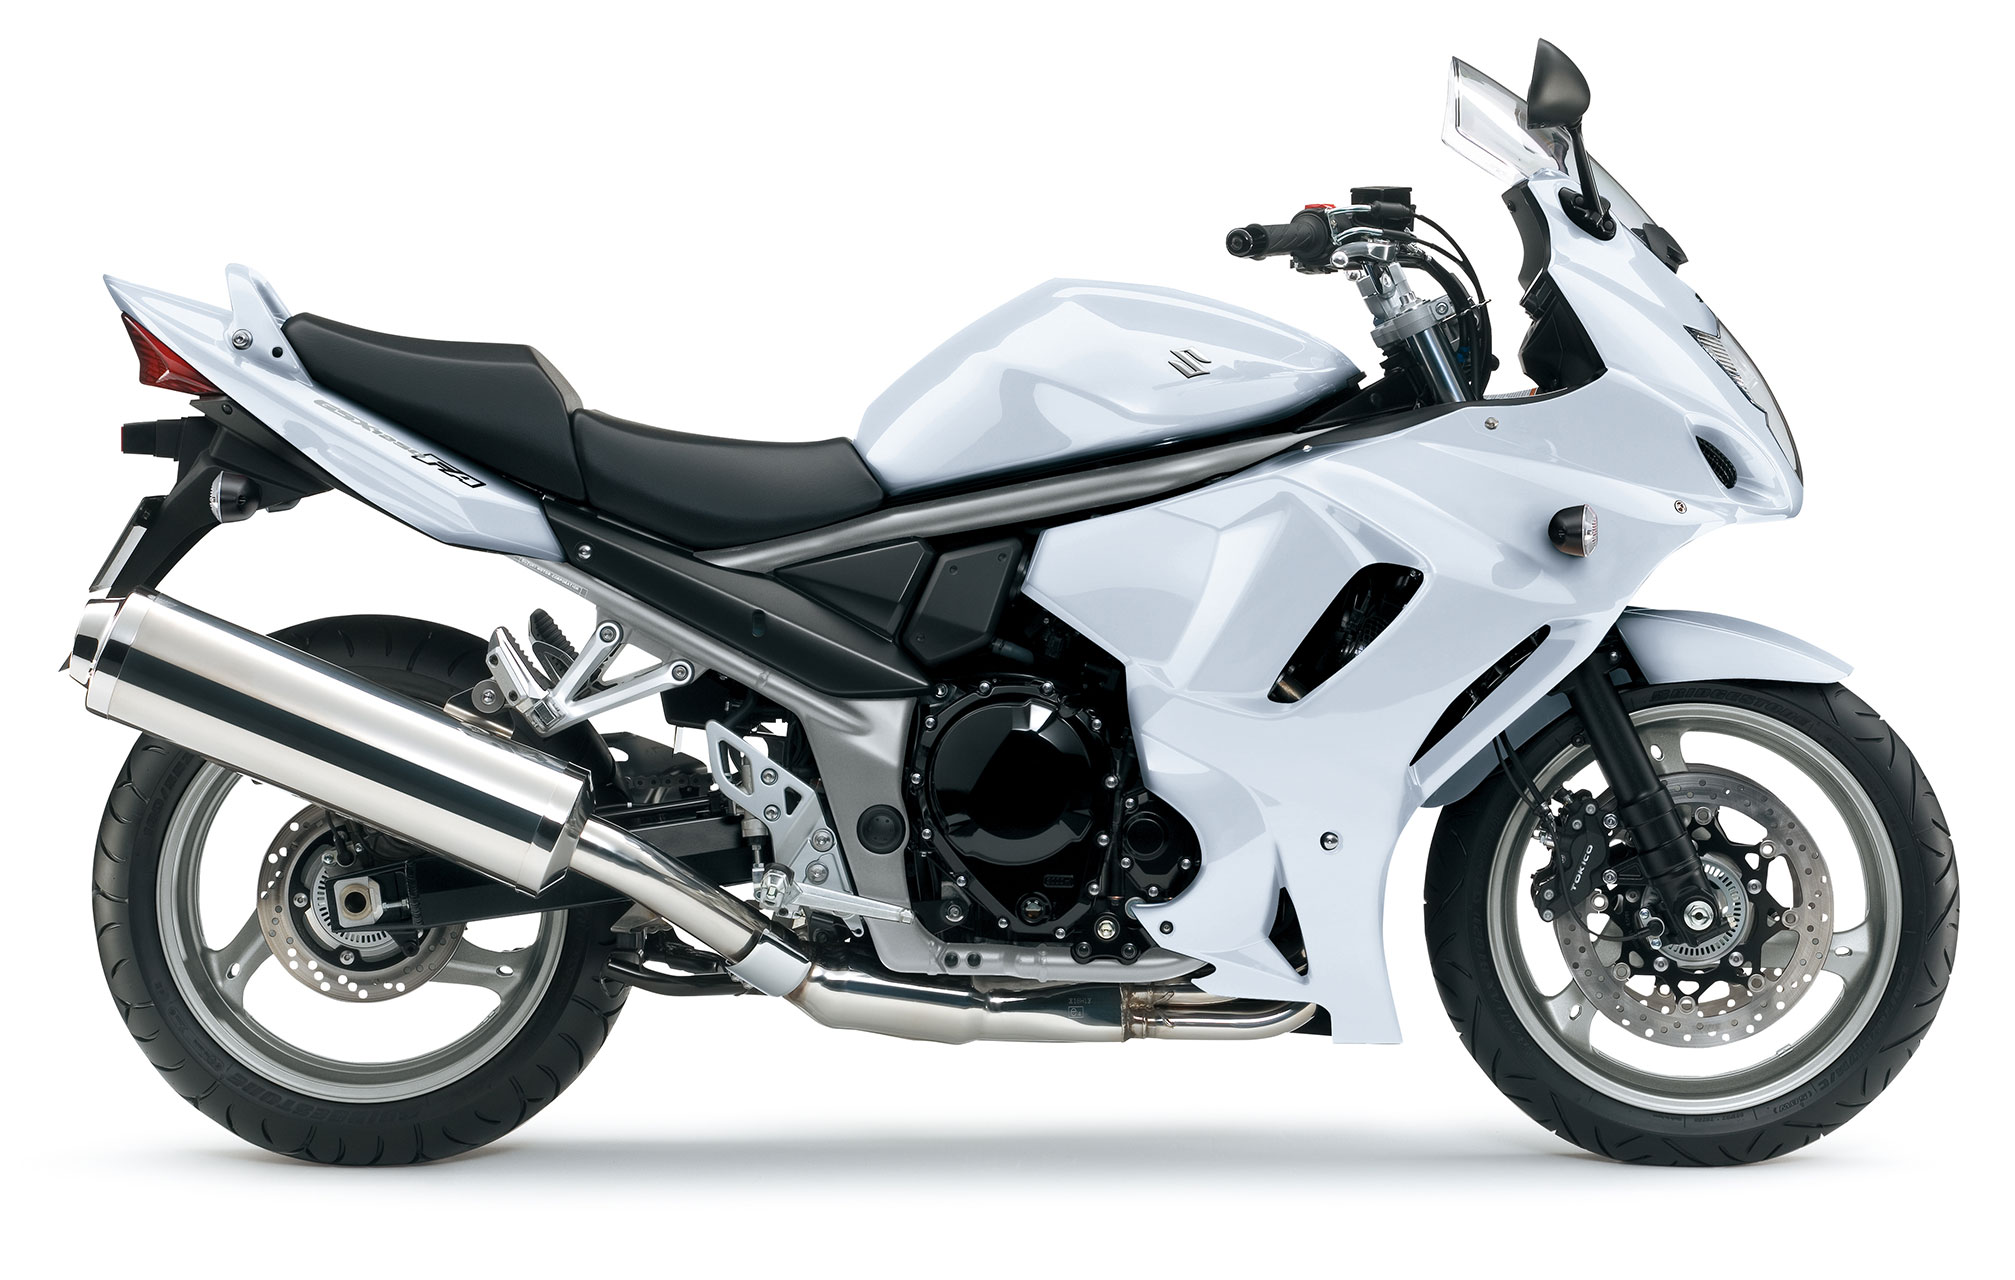 suzuki gsx1250fa specs 2013 2014 autoevolution. Black Bedroom Furniture Sets. Home Design Ideas